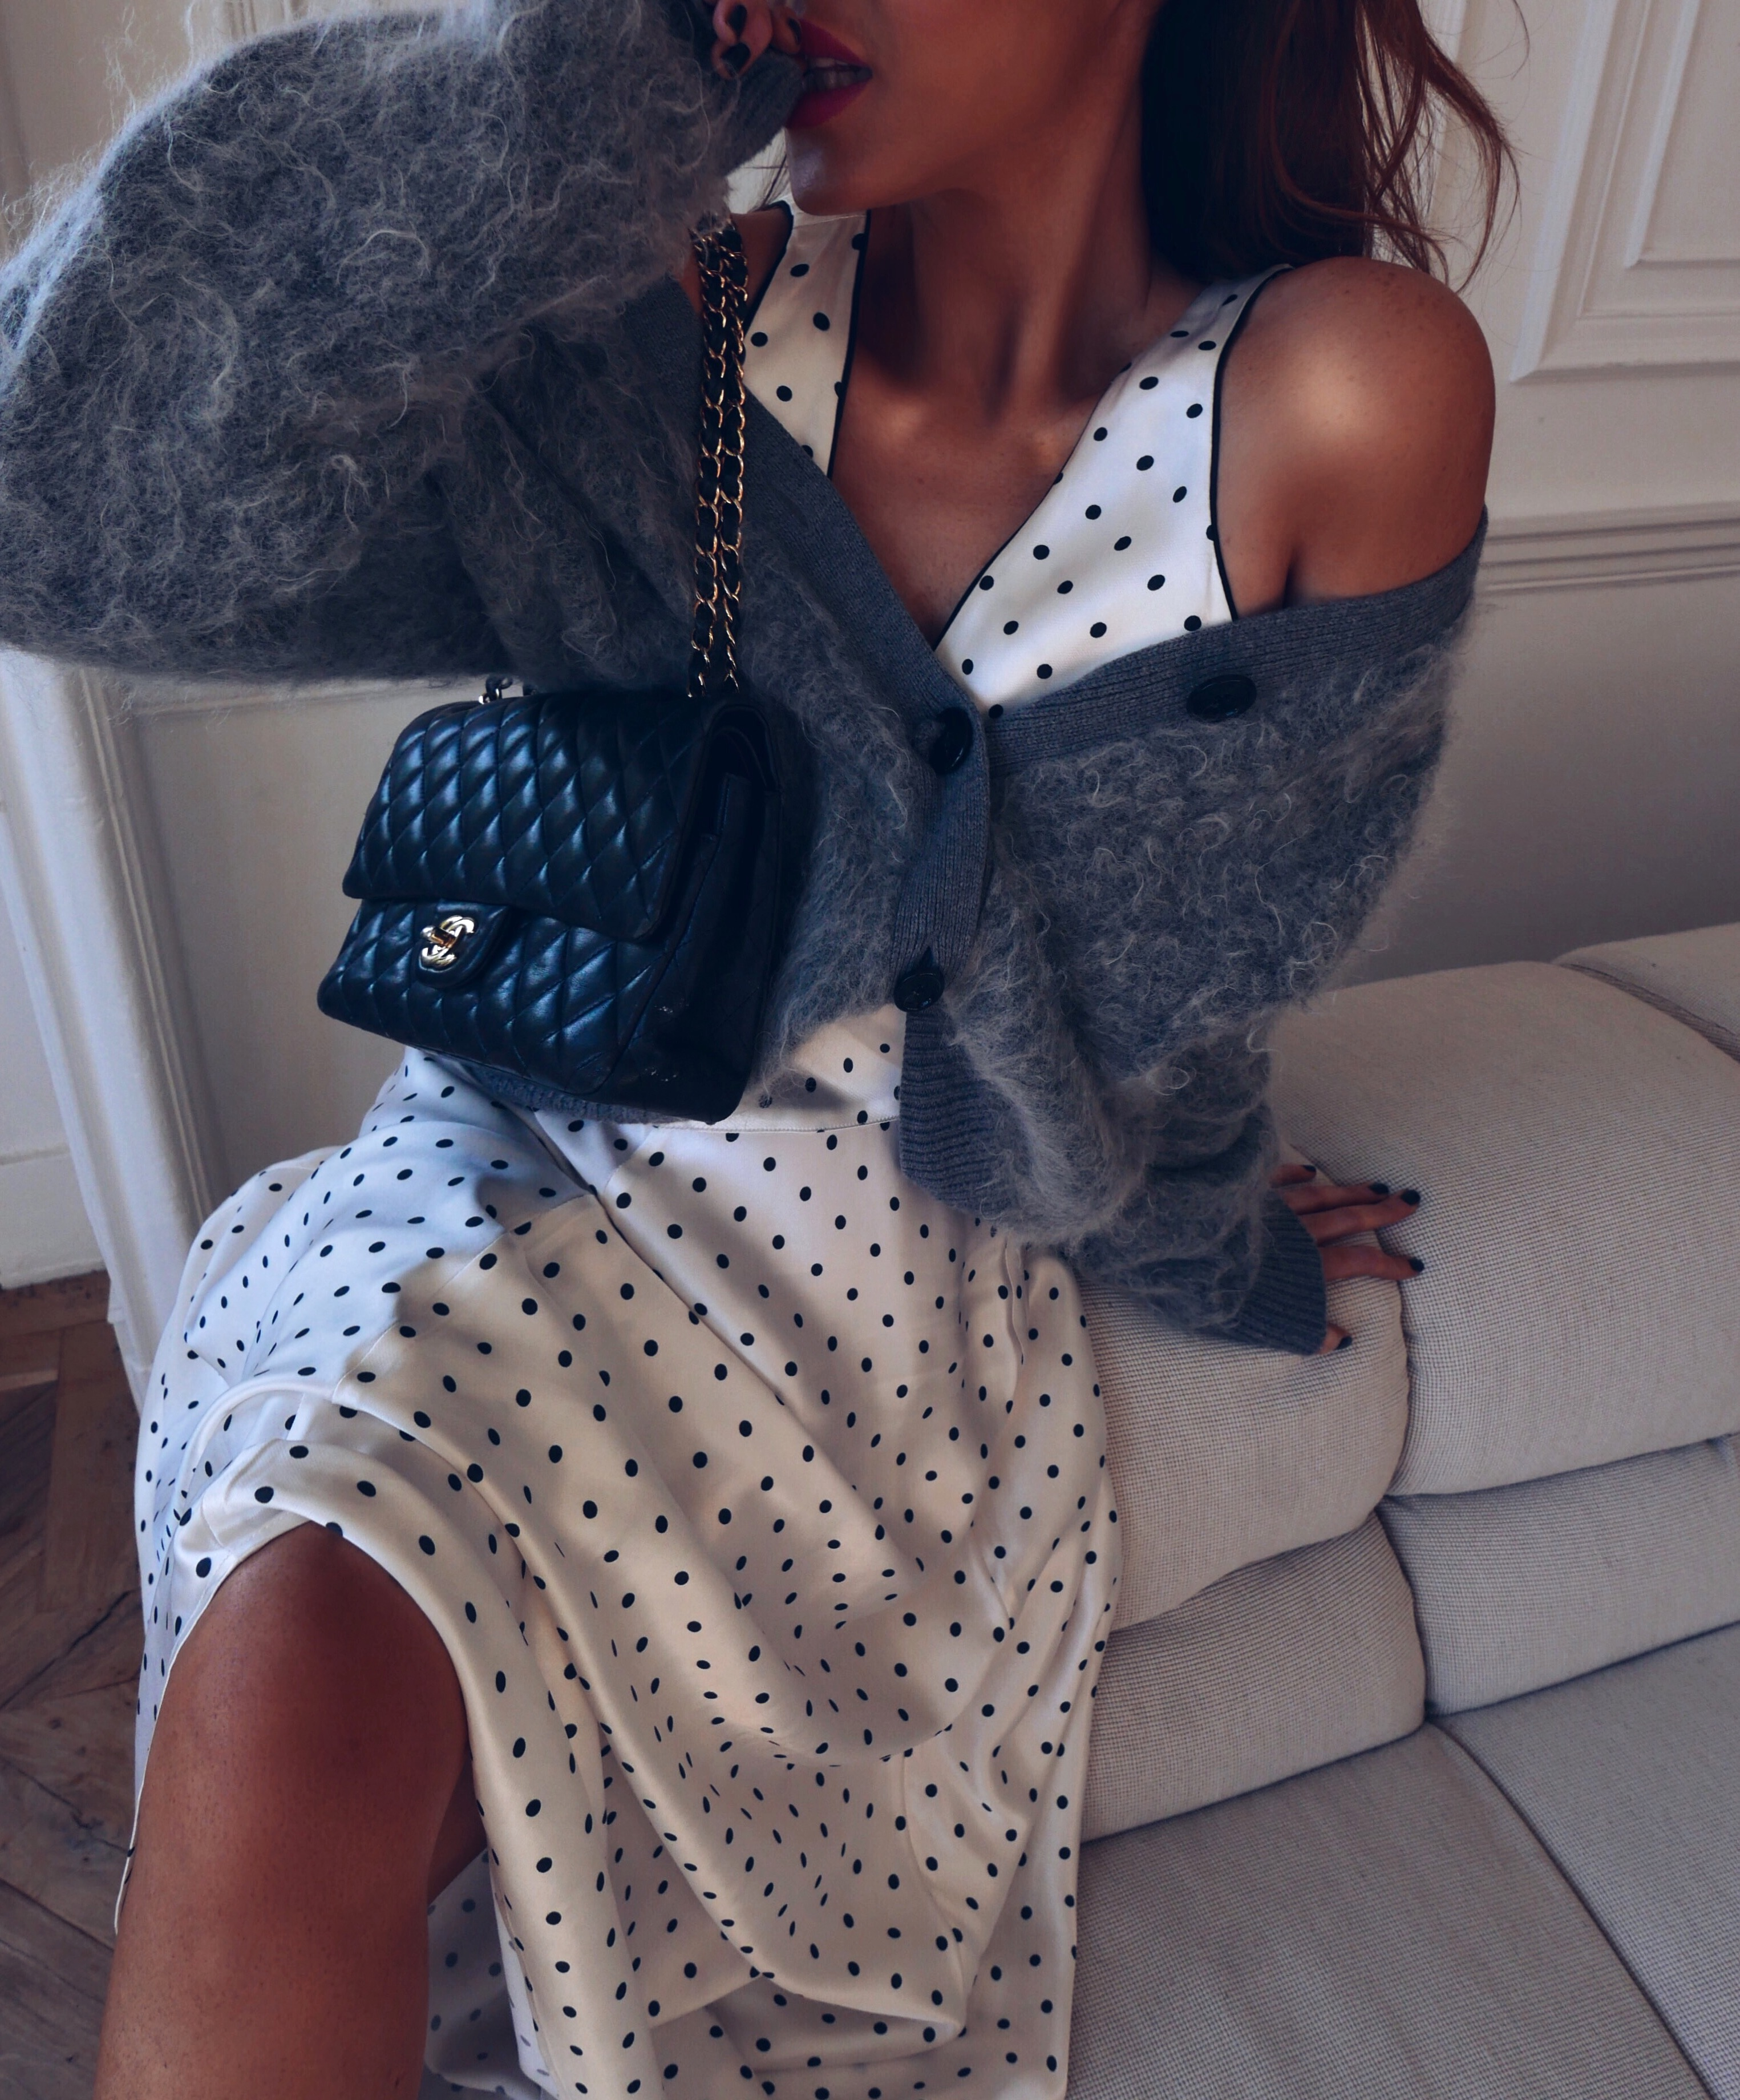 net-a-porter-sale-ganni-polka-dot-dress